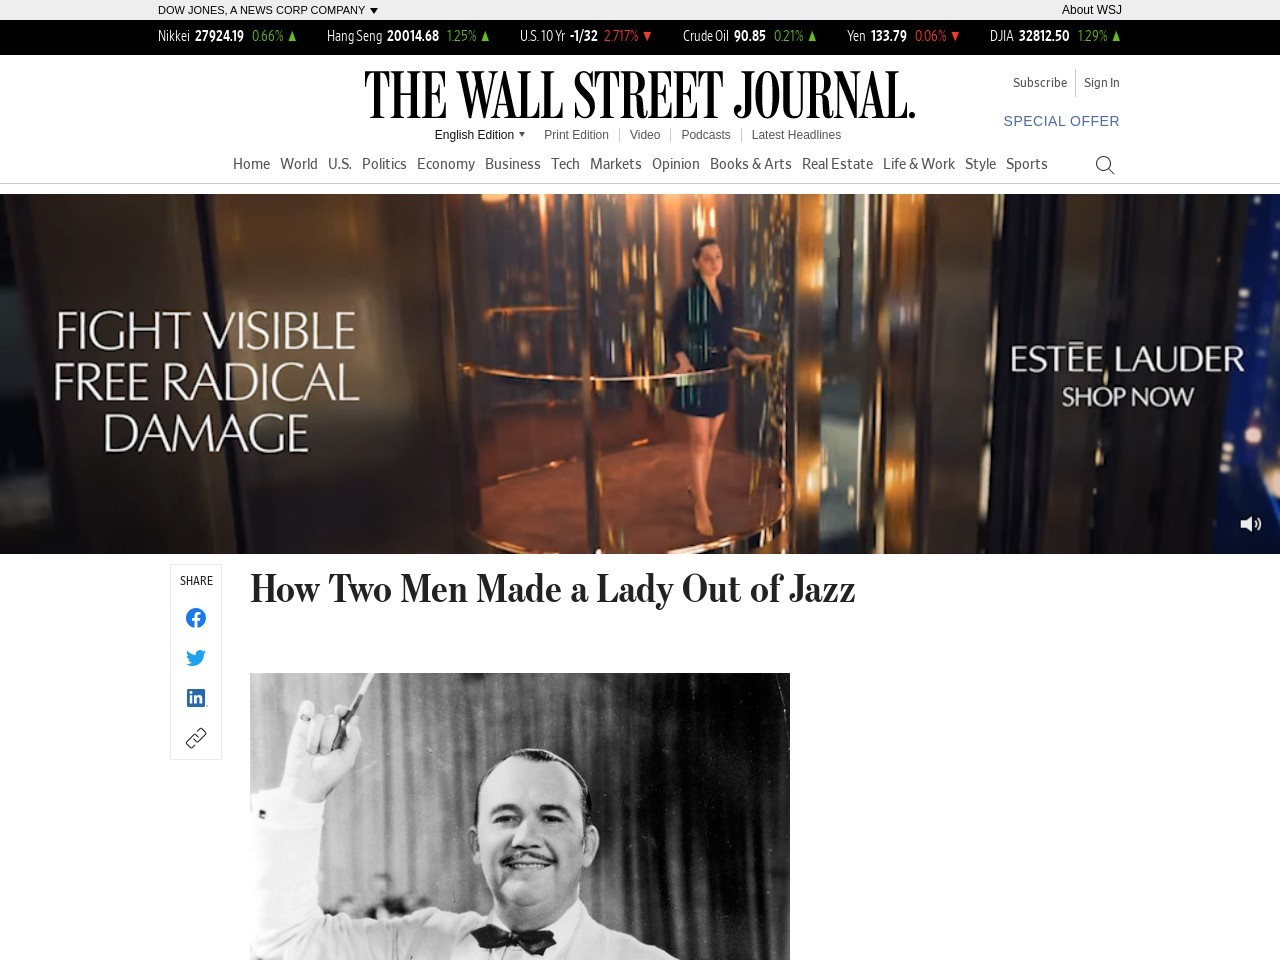 How Two Men Made a Lady Out of Jazz